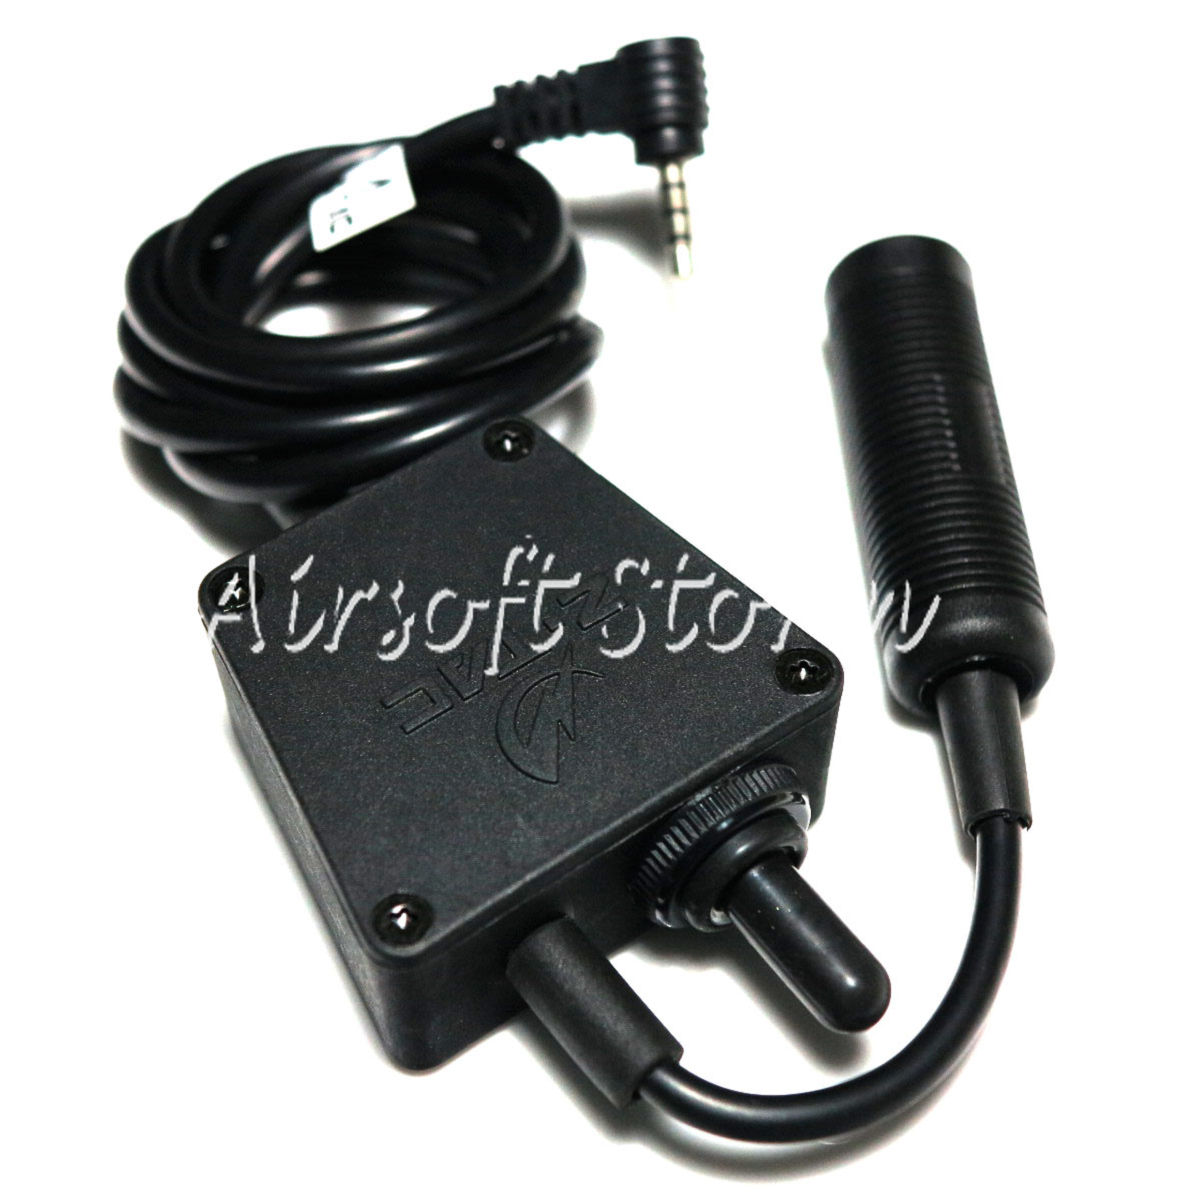 Airsoft SWAT Communications Gear Z Tactical E-Switch Headset PTT for Yaesu Radio